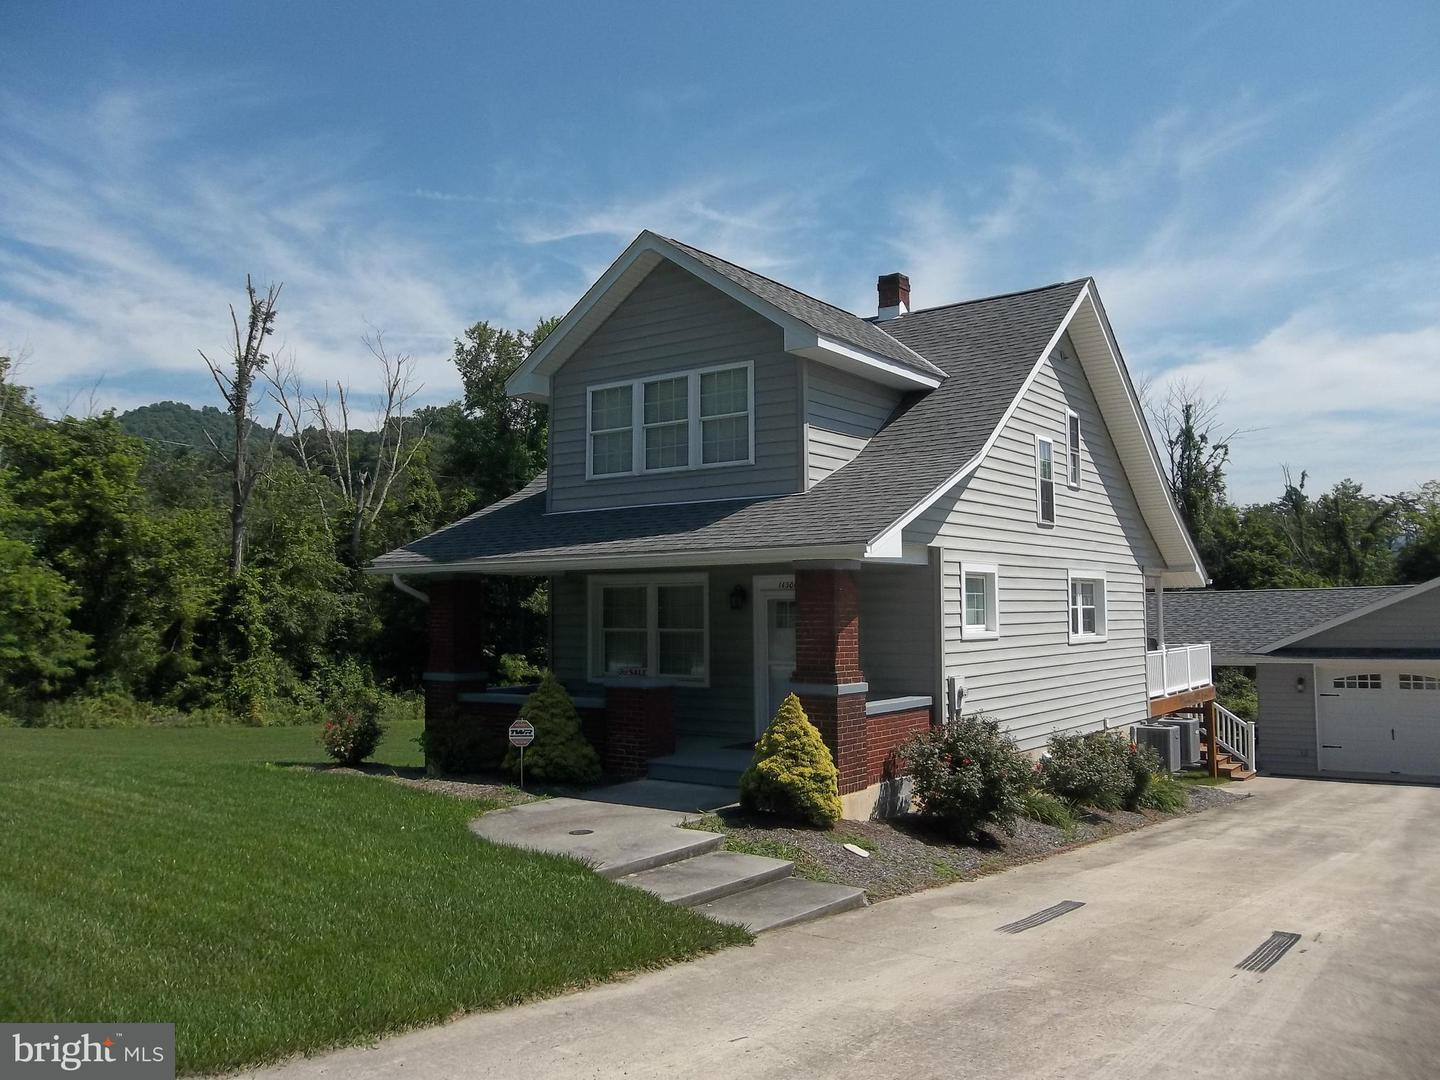 Single Family for Sale at 14301 Smouses Mill Rd NE Cumberland, Maryland 21502 United States